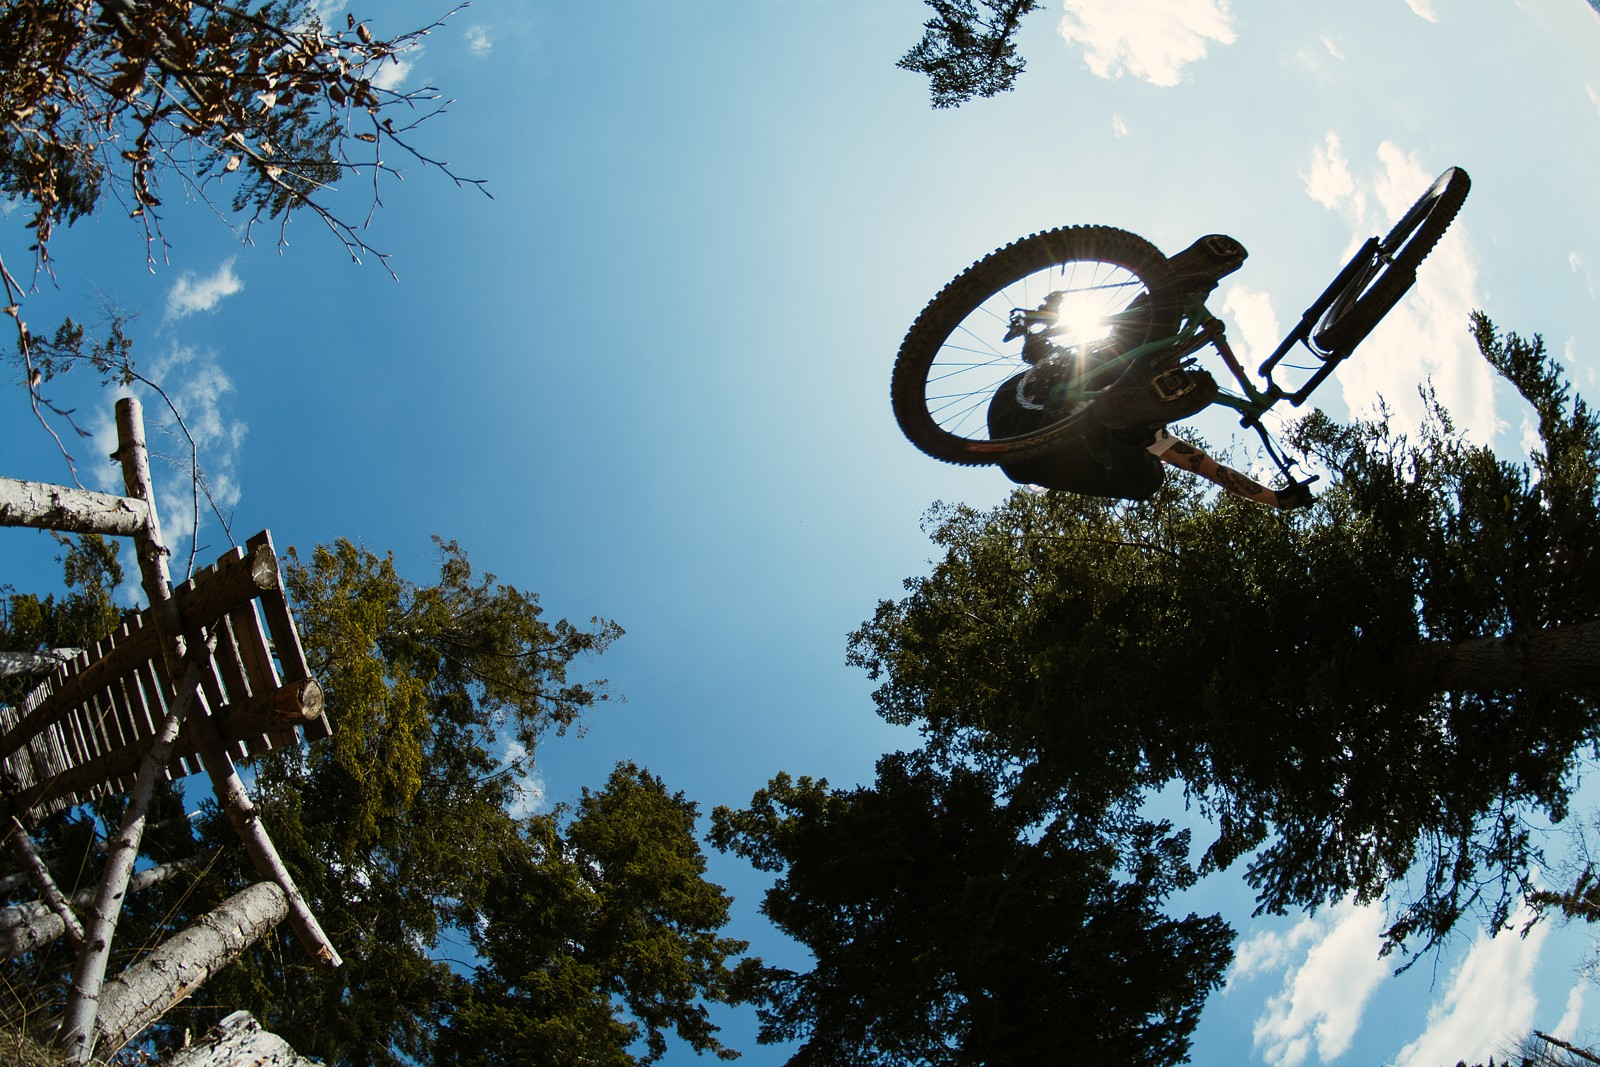 Spring is in the air - Banan - Mountain Biking Pictures - Vital MTB